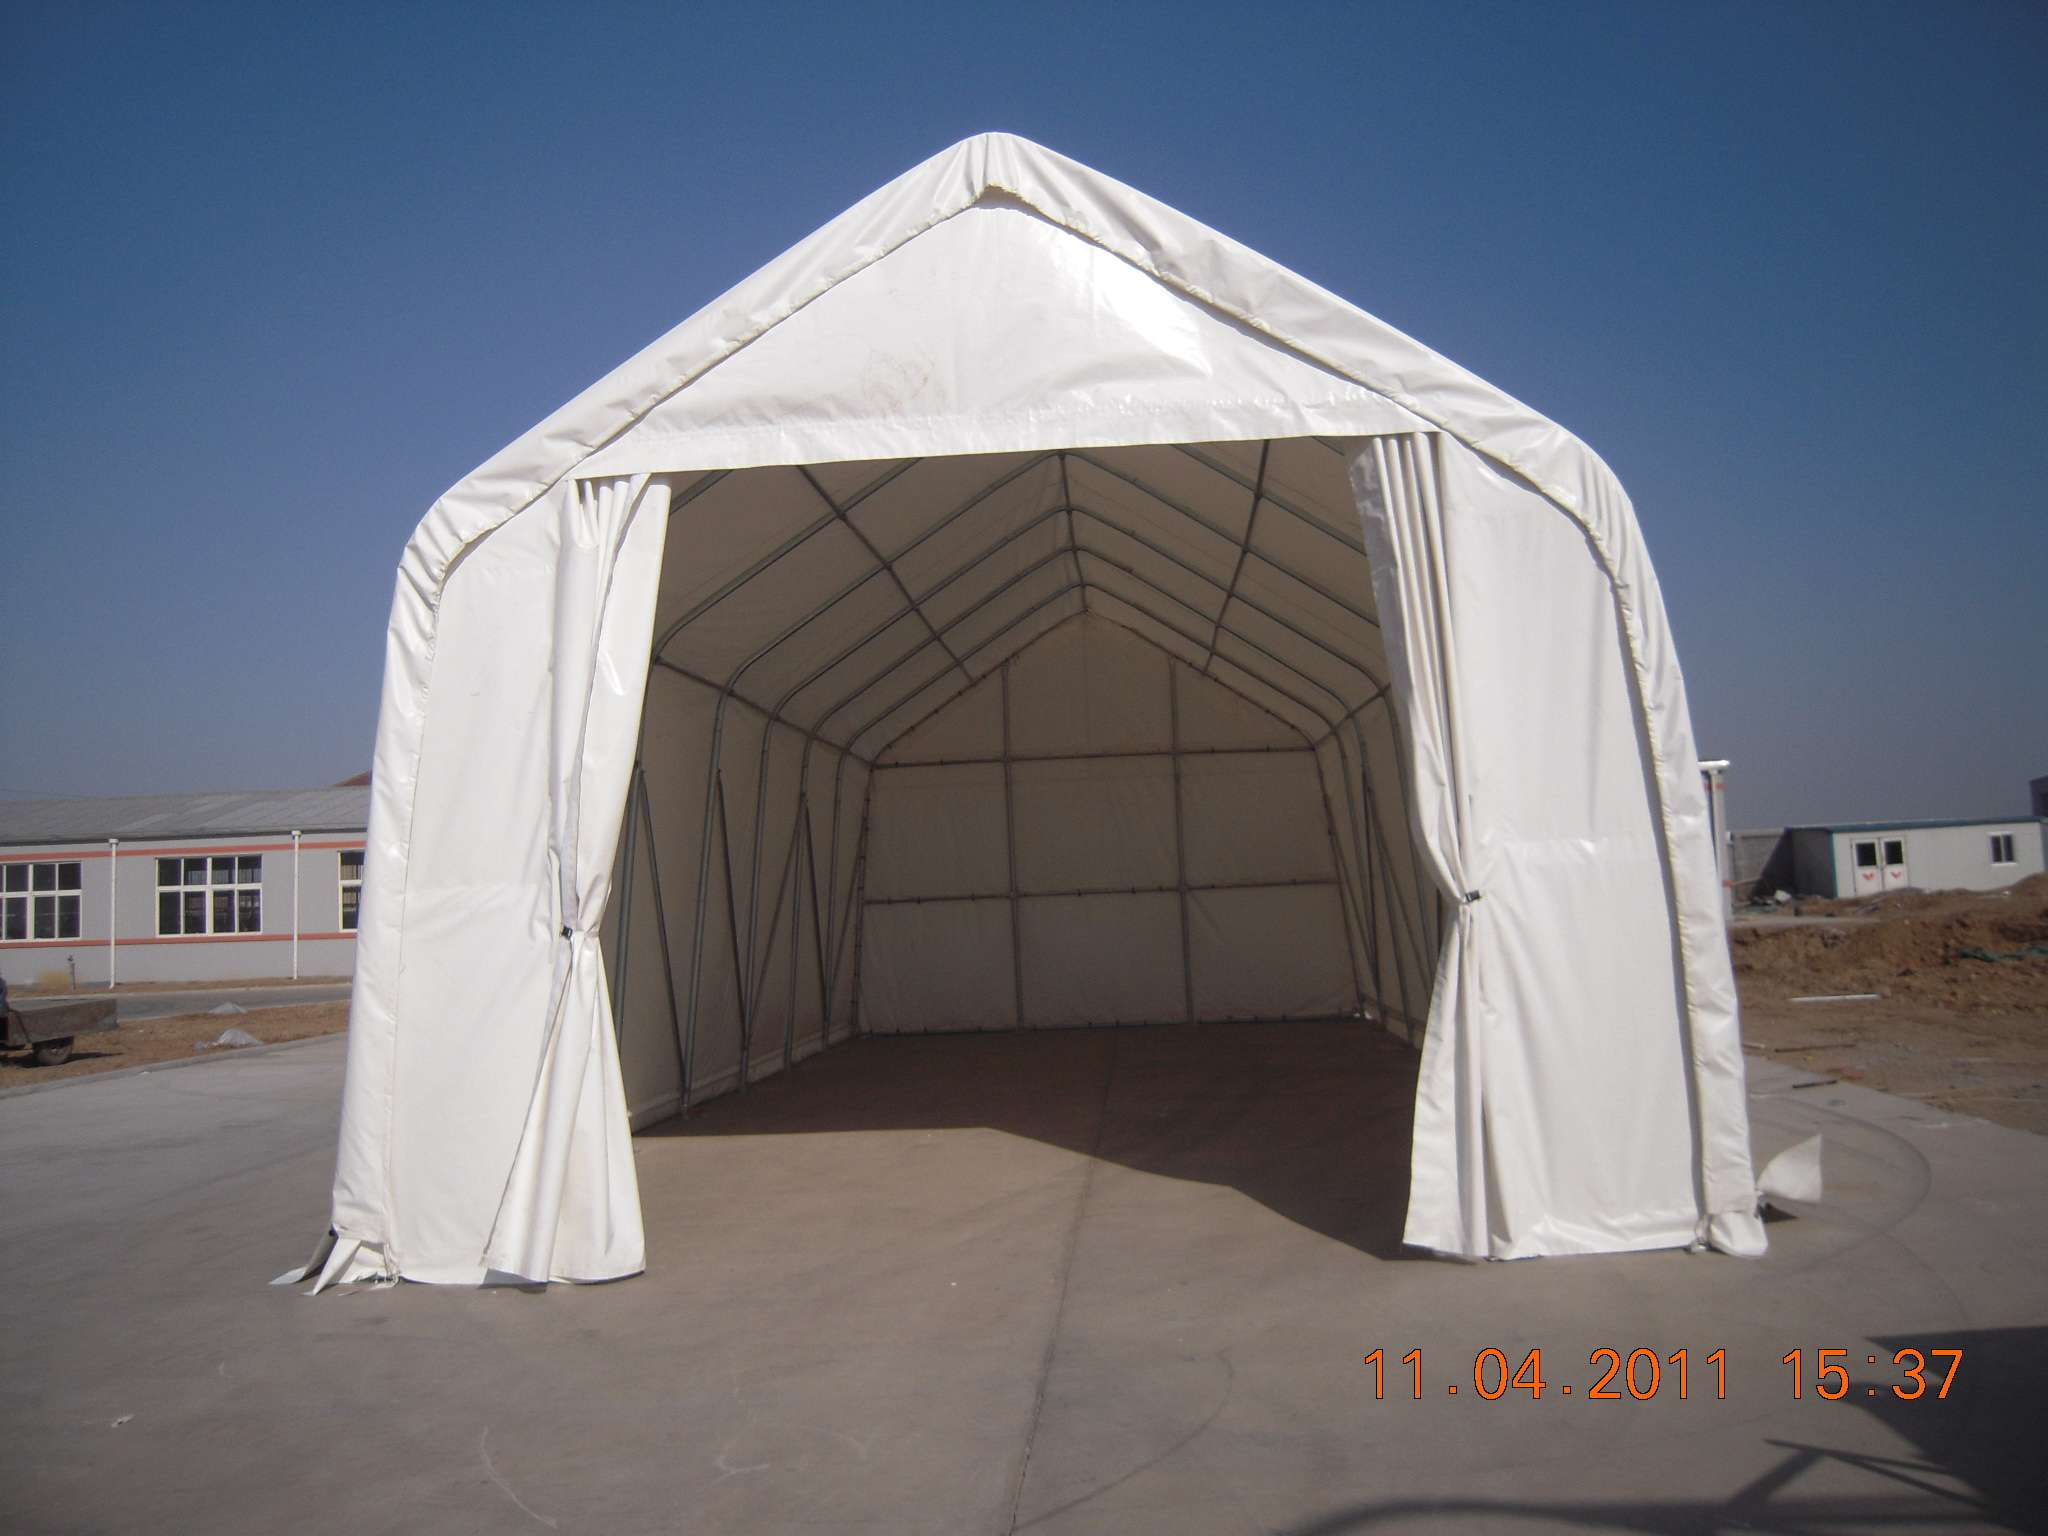 Sheltersportable garagestentshedsoutdoor storagelarge tentswarehousecarportstorage tents & Sheltersportable garagestentshedsoutdoor storagelarge tents ...